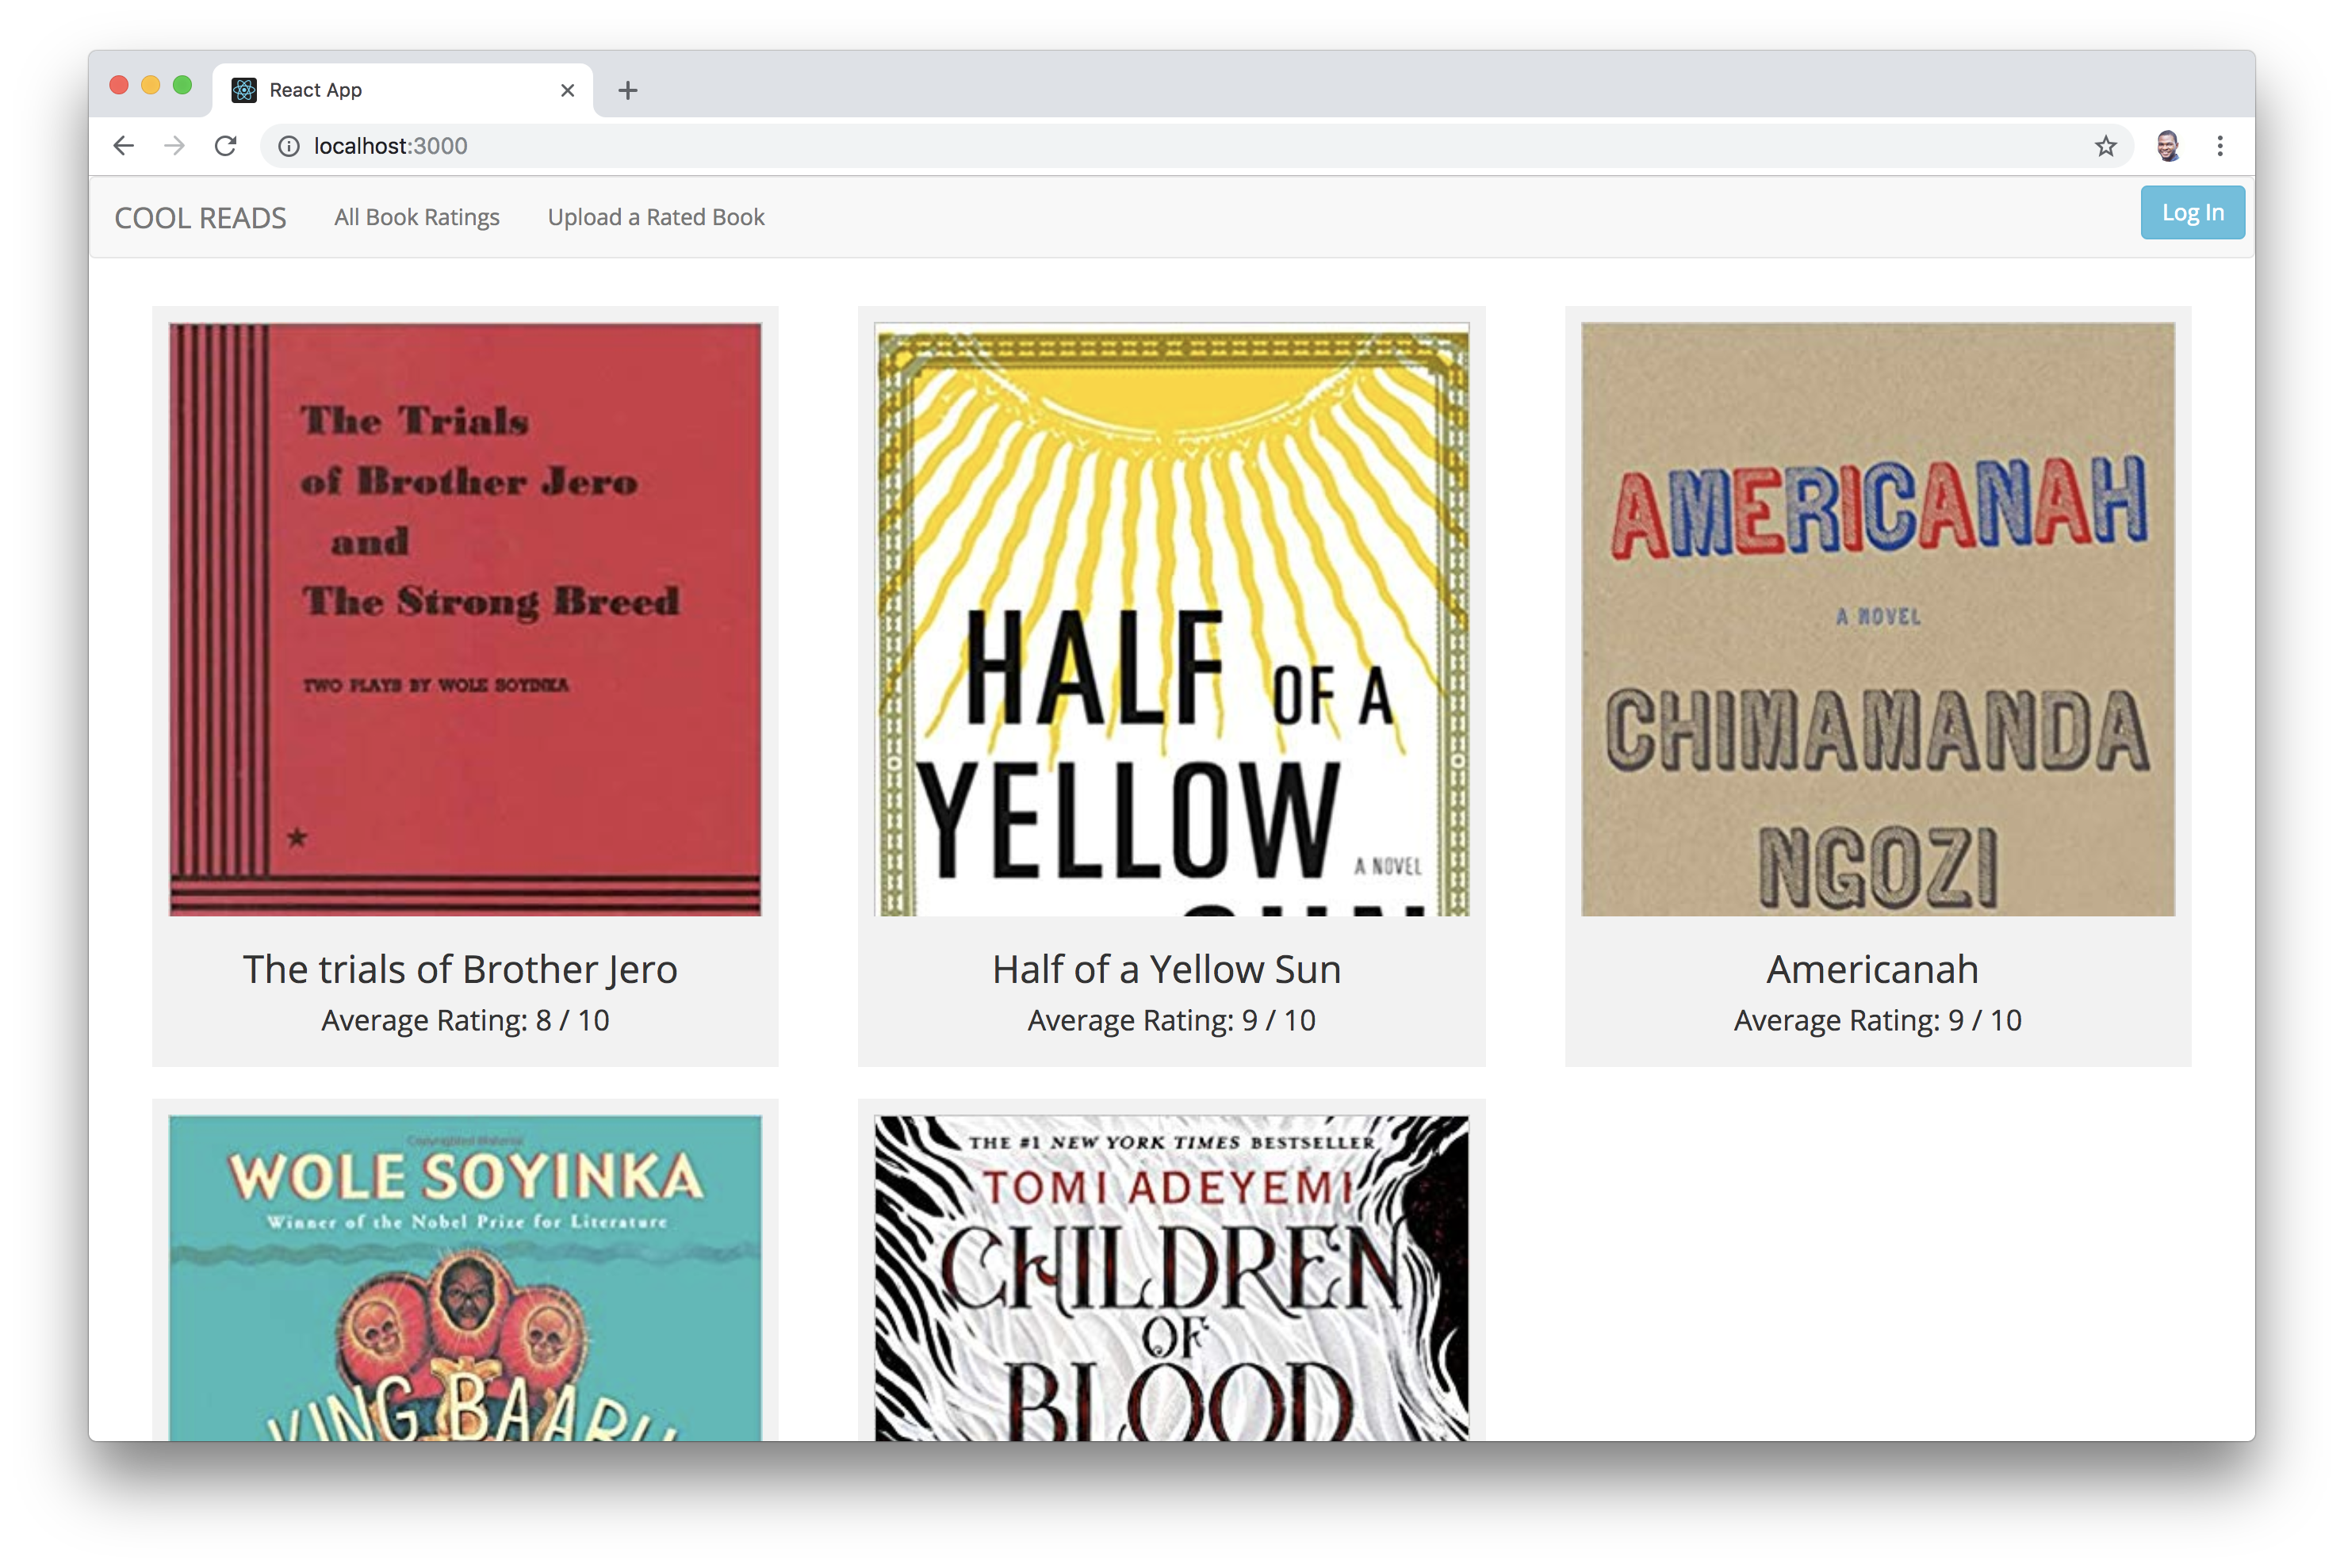 React App locally showing our list of books